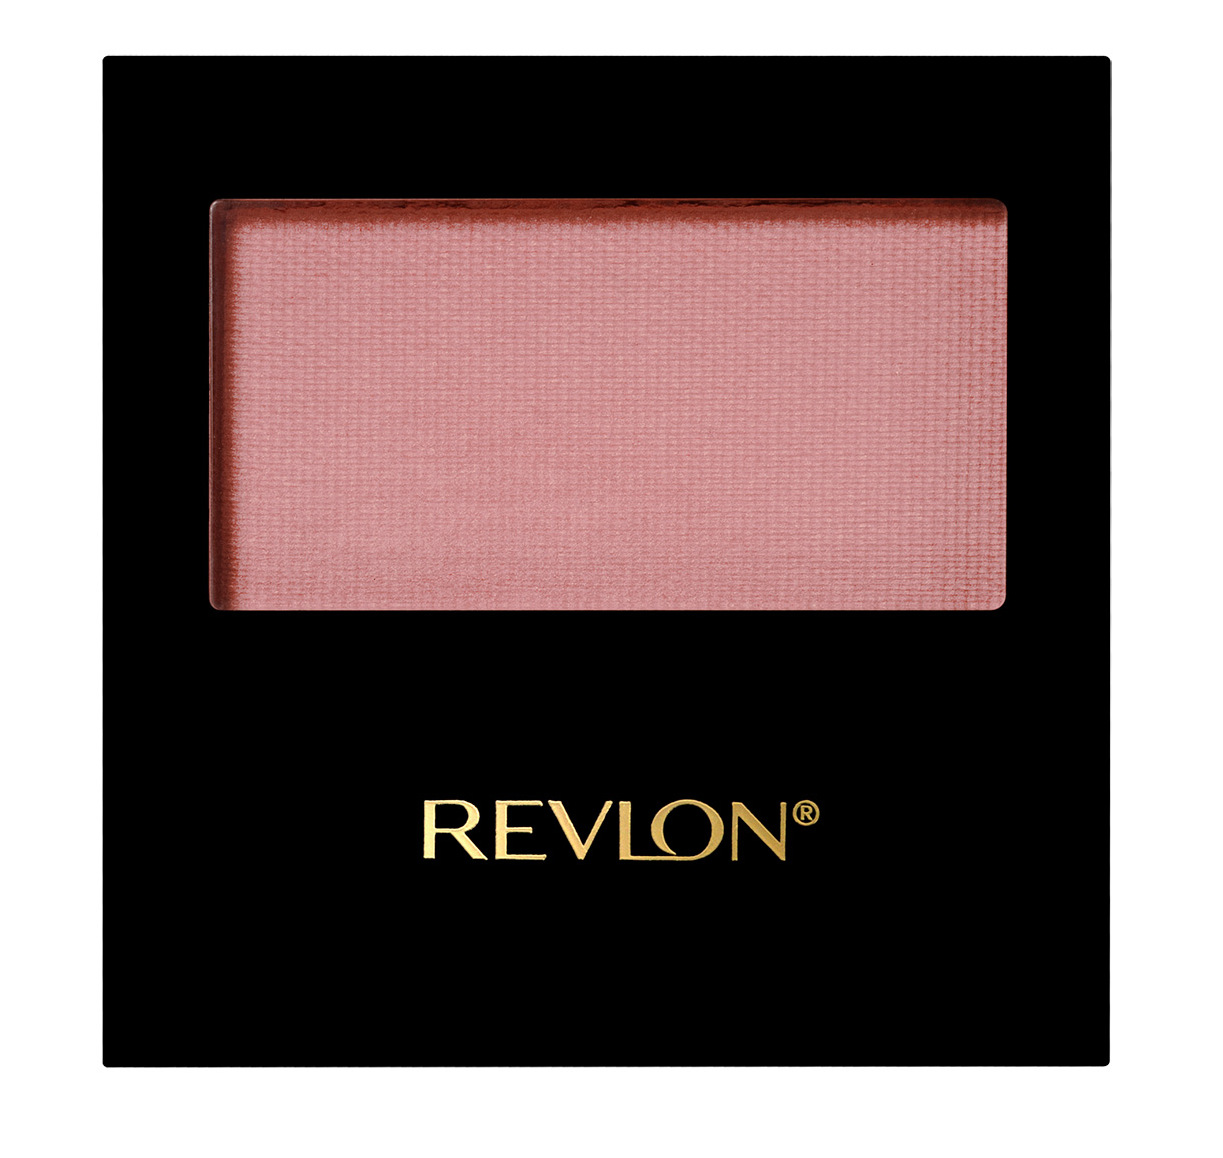 REVLON Румяна для лица 004 / Powder Blush Rosy rendezvous - Румяна